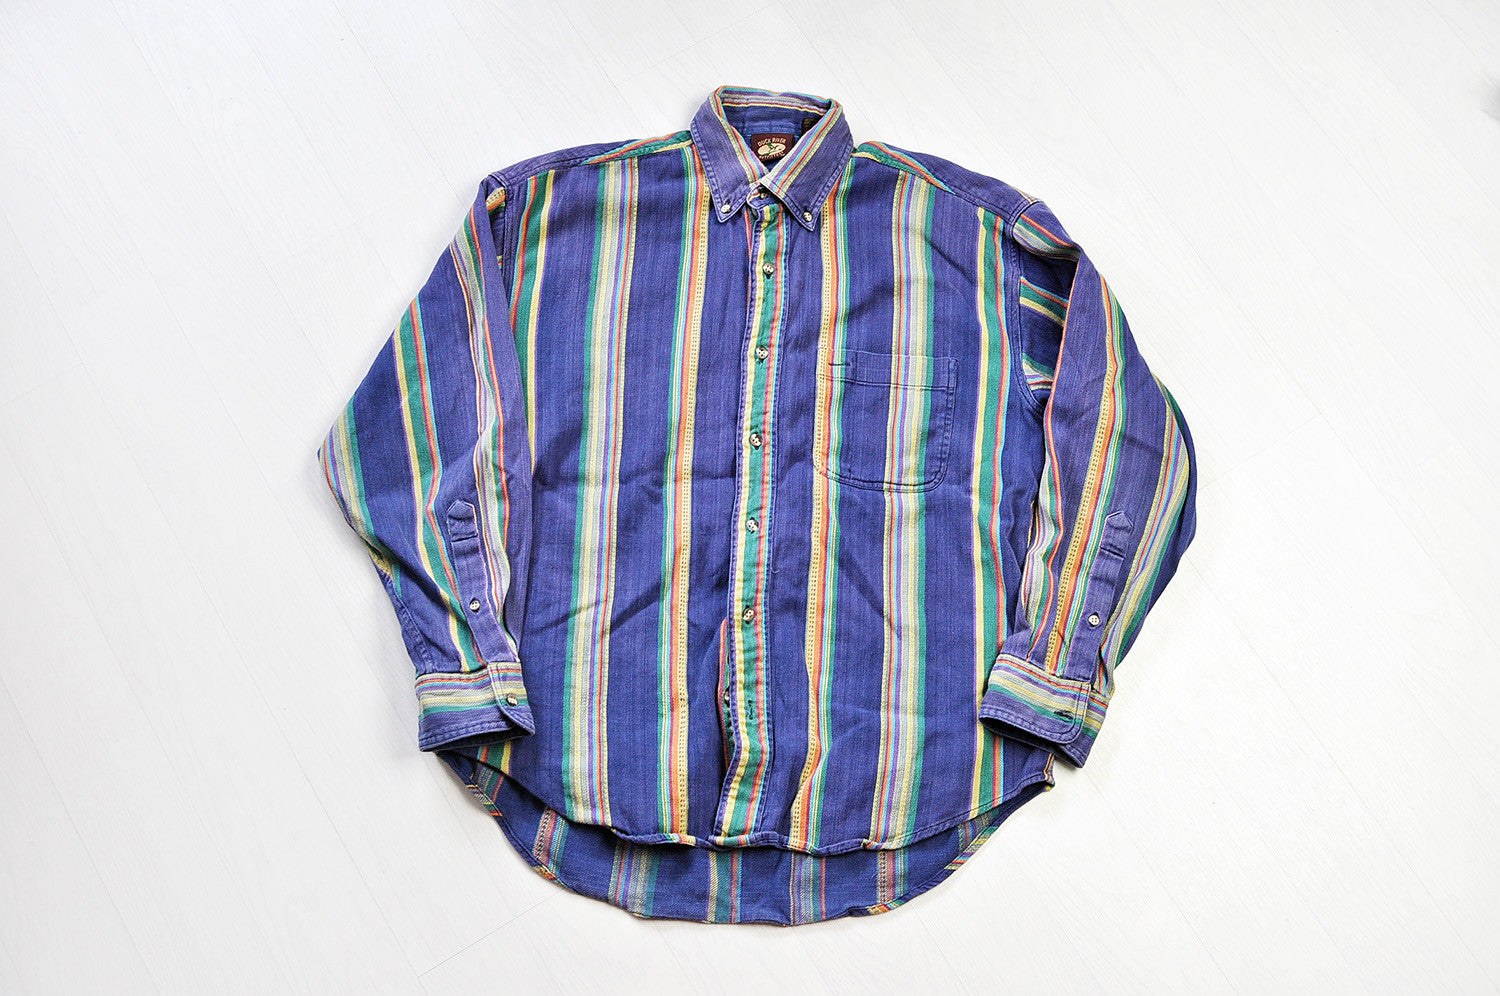 Vintage Multi-coloured Stripped Patterned Plaid Long Sleeve Shirt